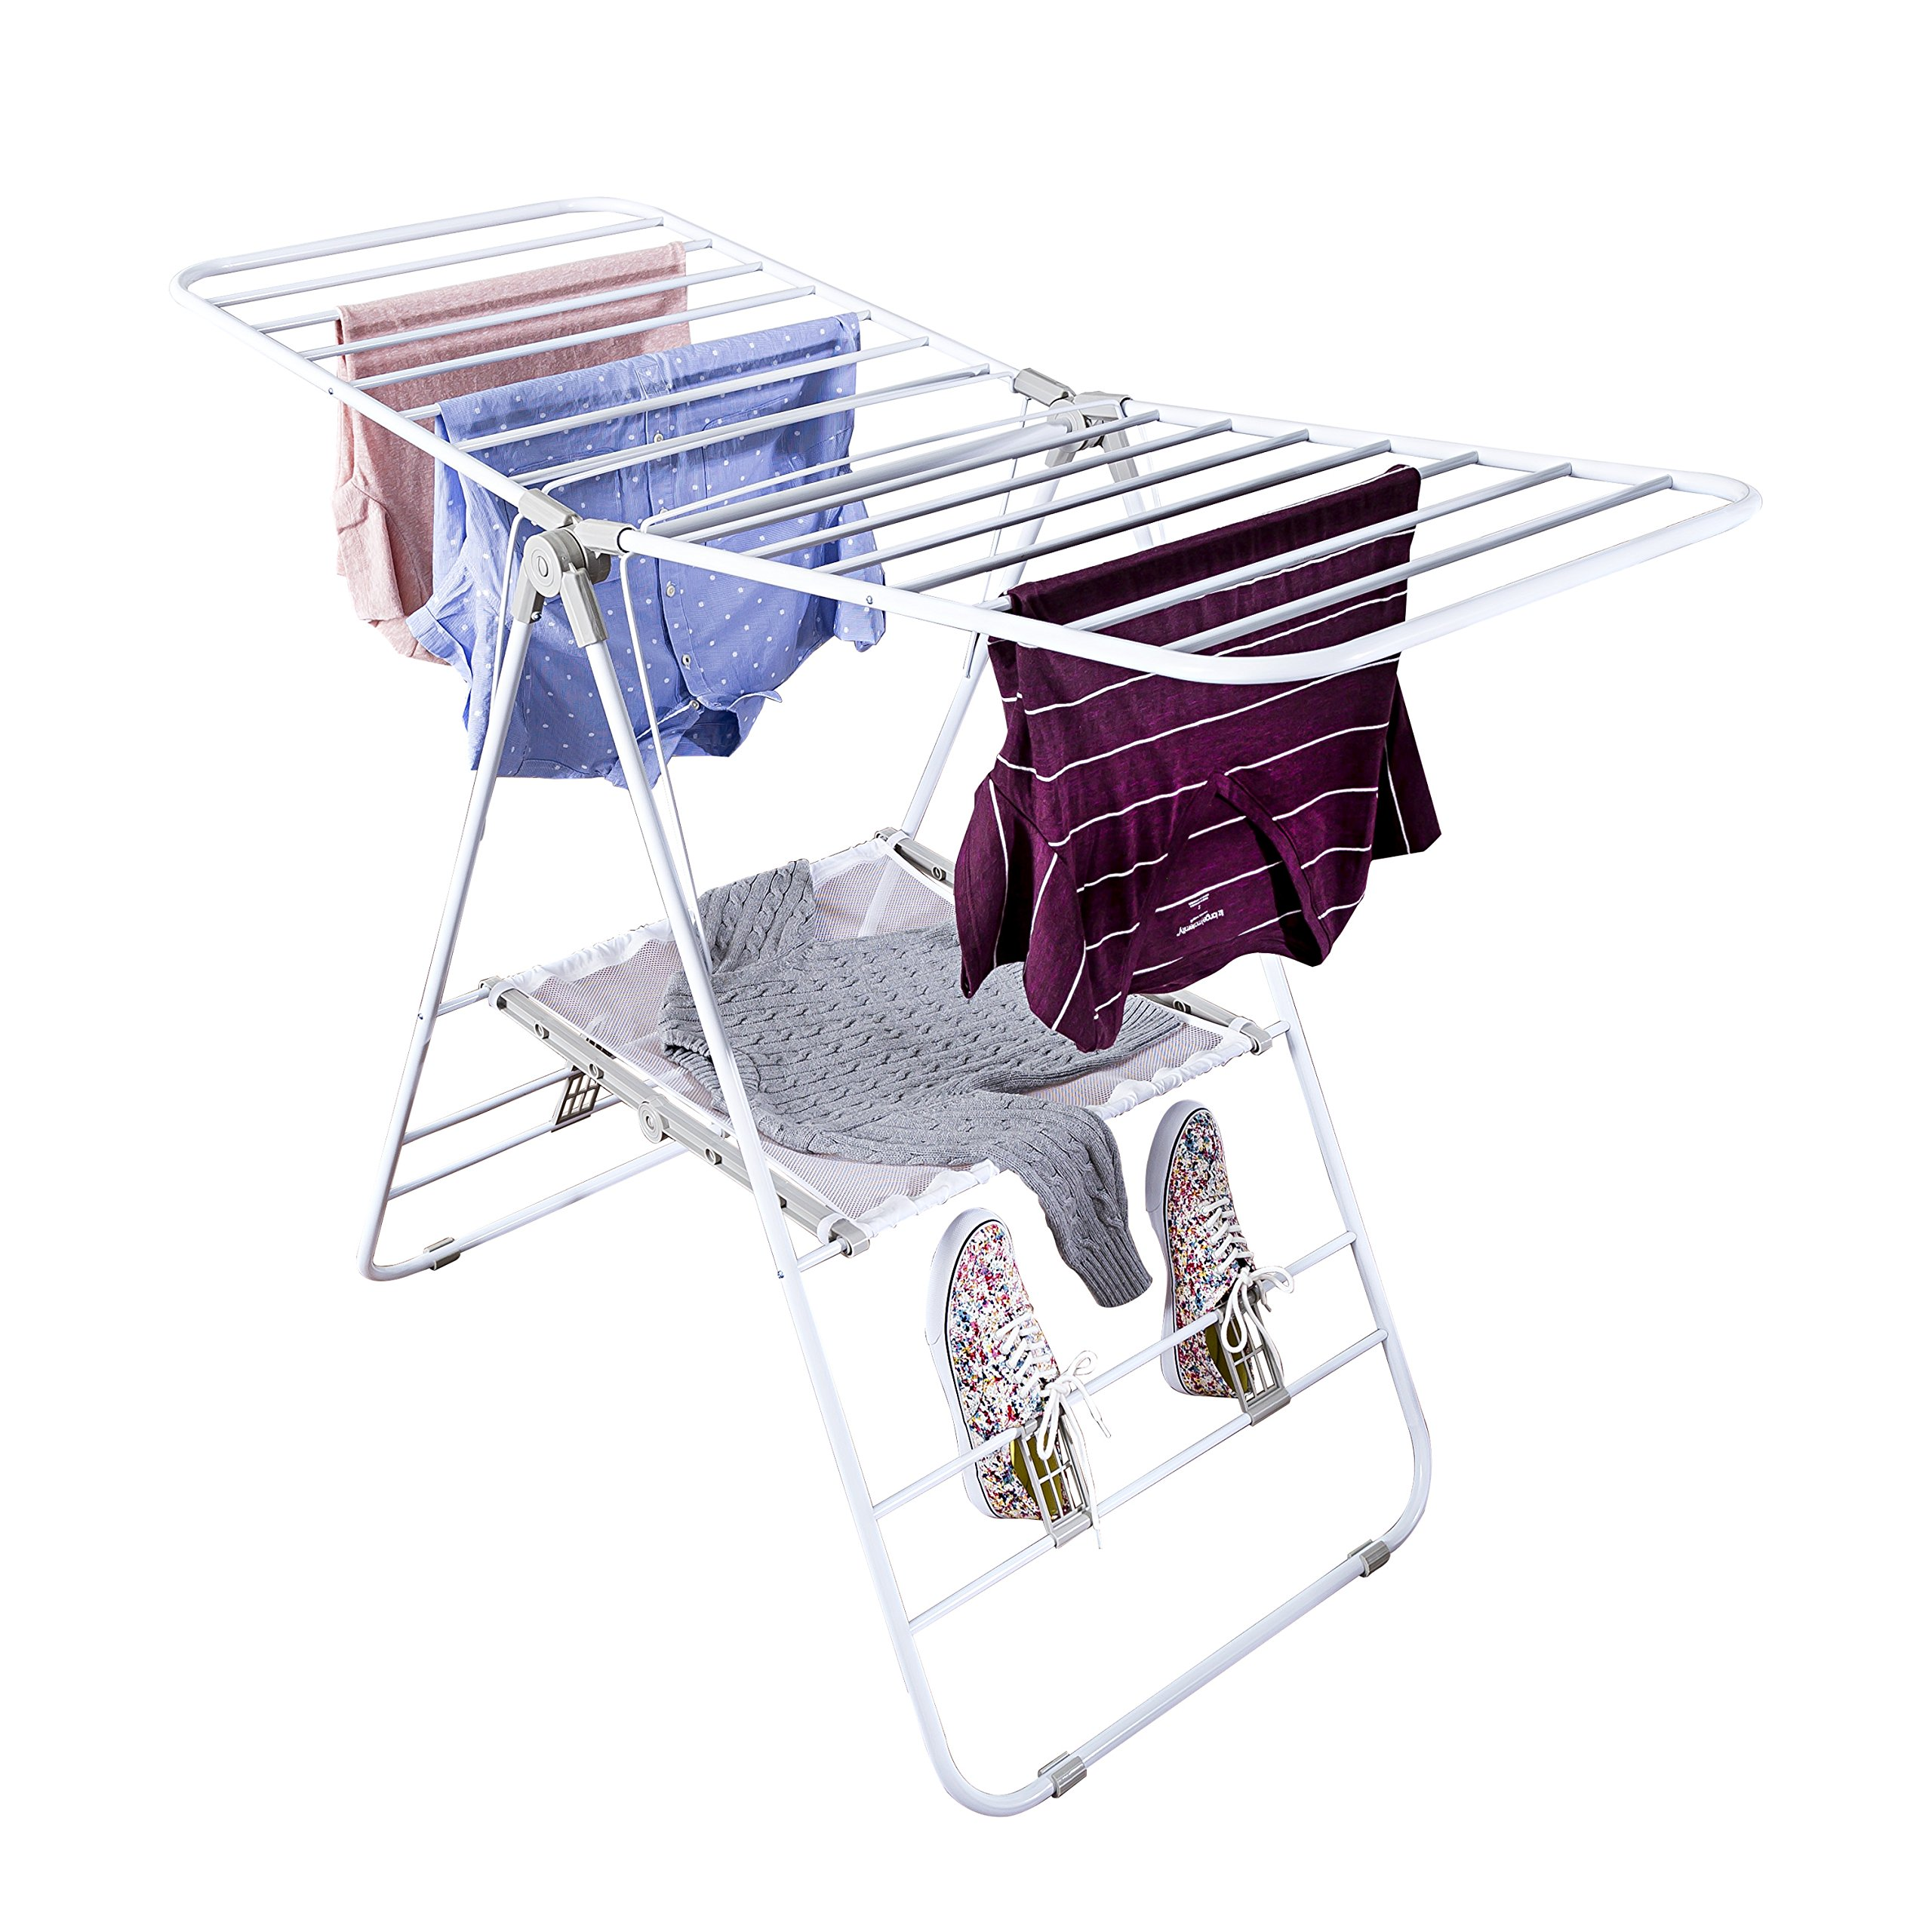 Honey-Can-Do Heavy Duty Gullwing Drying Rack, White Metal by Honey-Can-Do